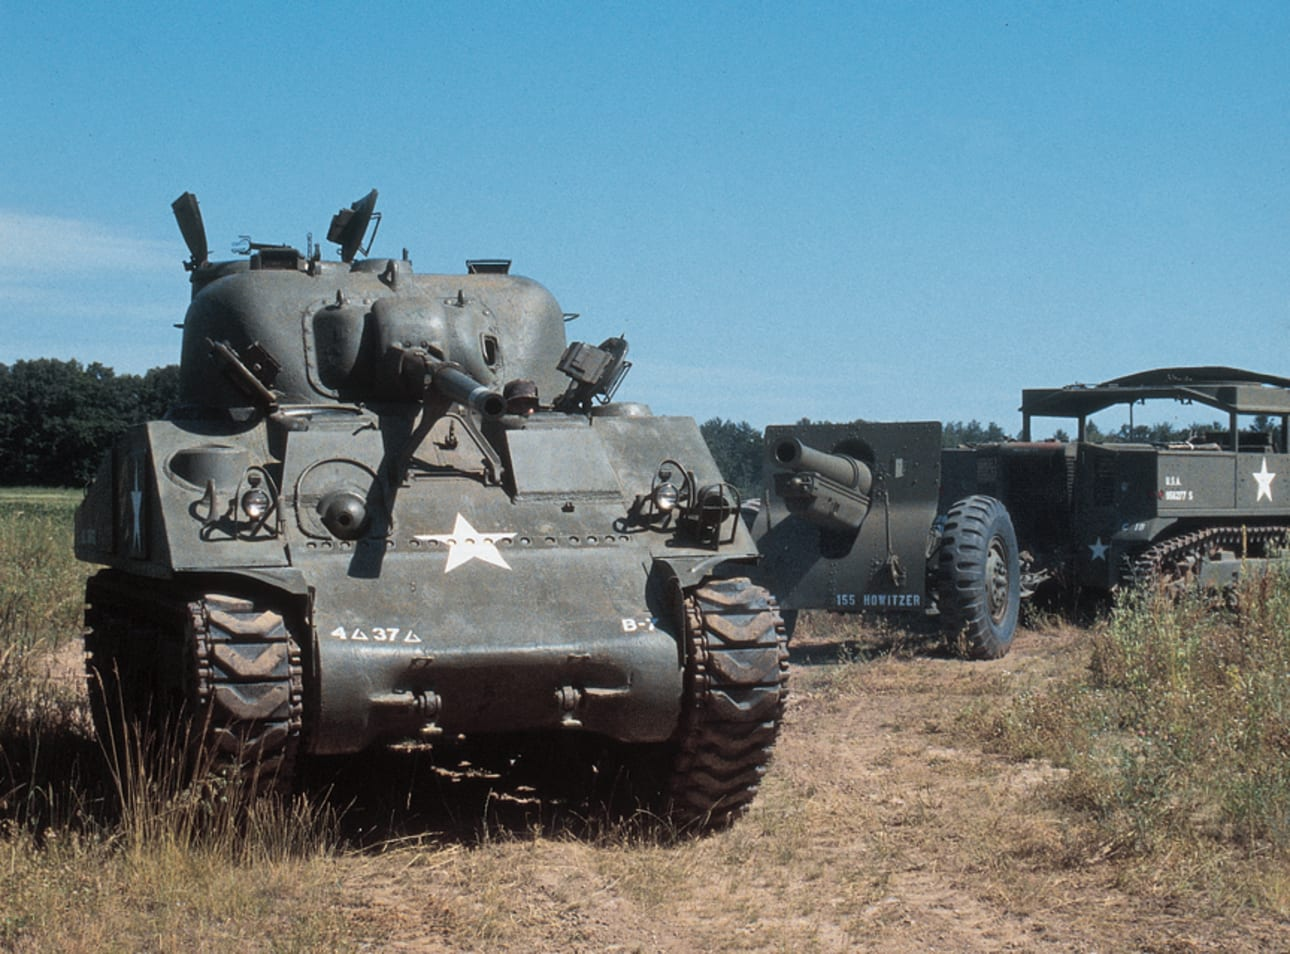 7. Tanks, Armor, and Tracked Military Vehicles